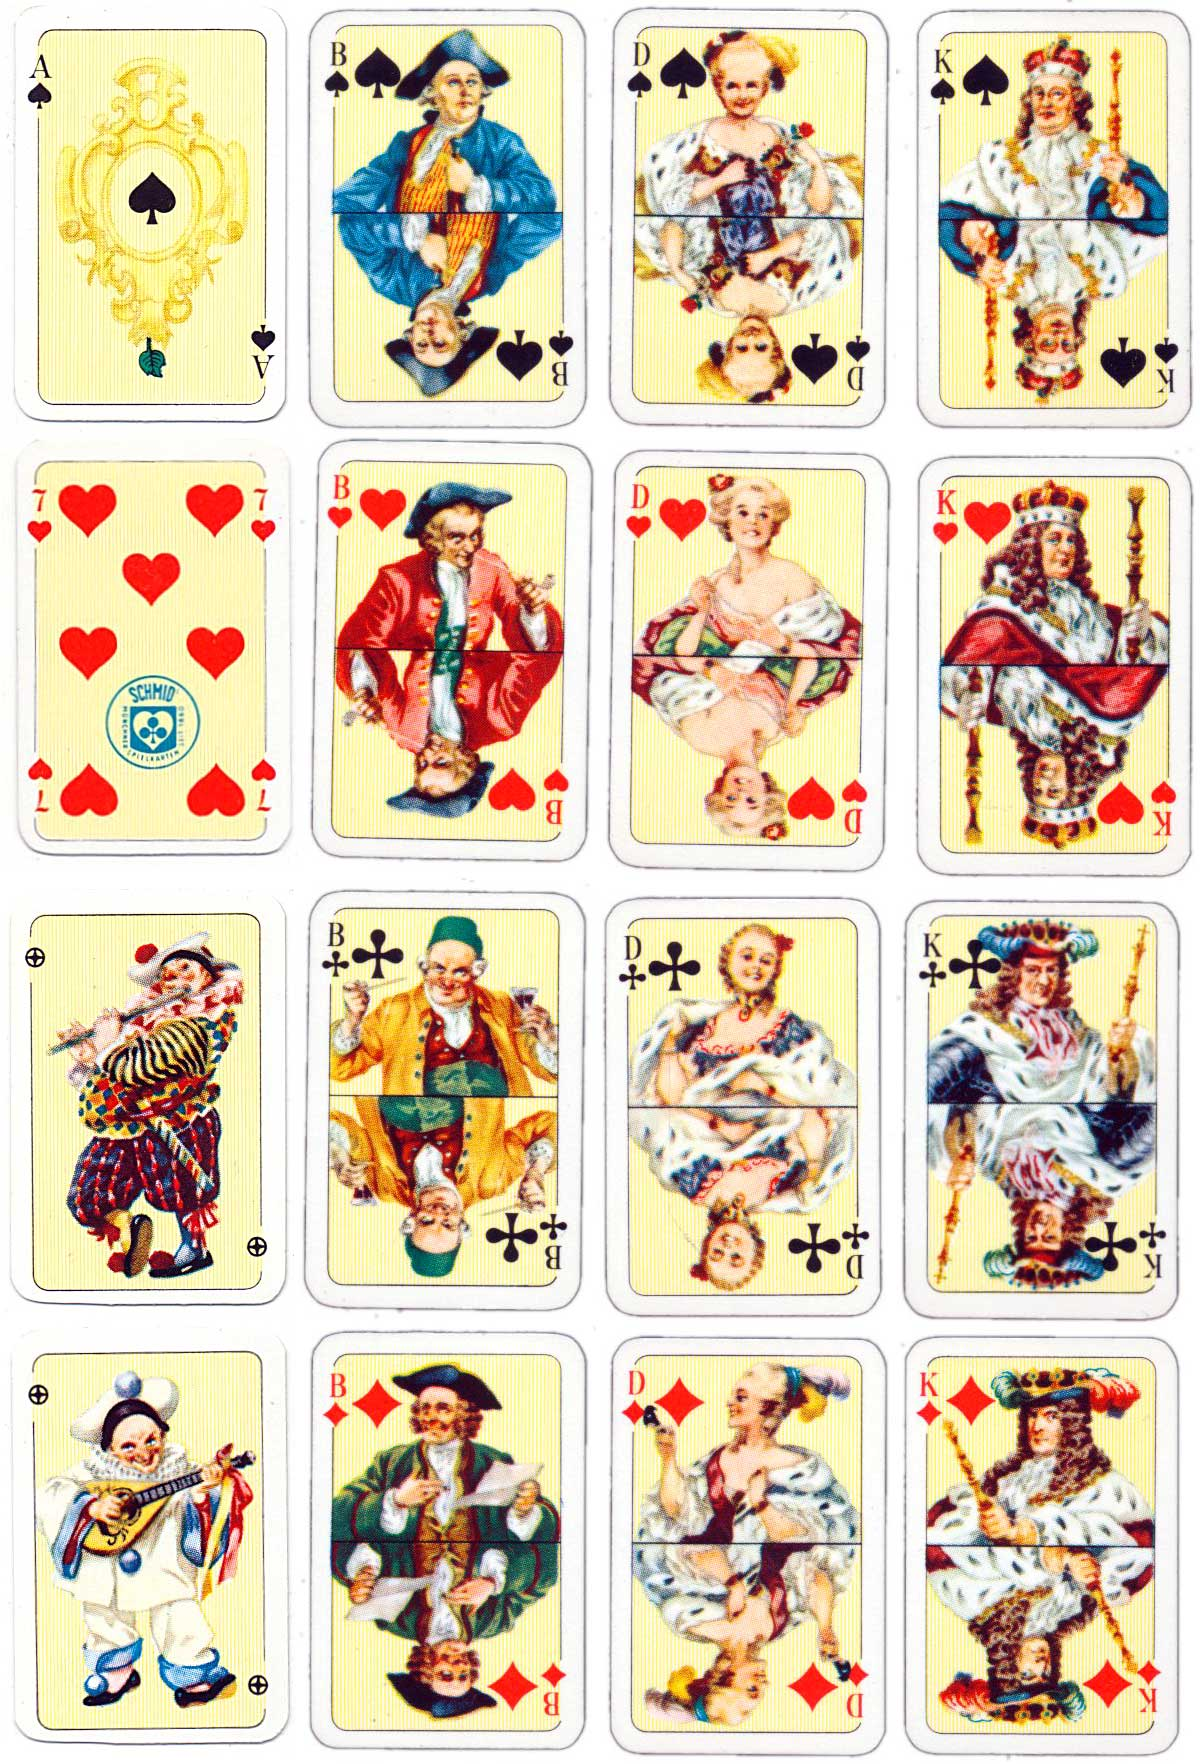 Miniature Patience playing cards published by F. X. Schmid, c.1970